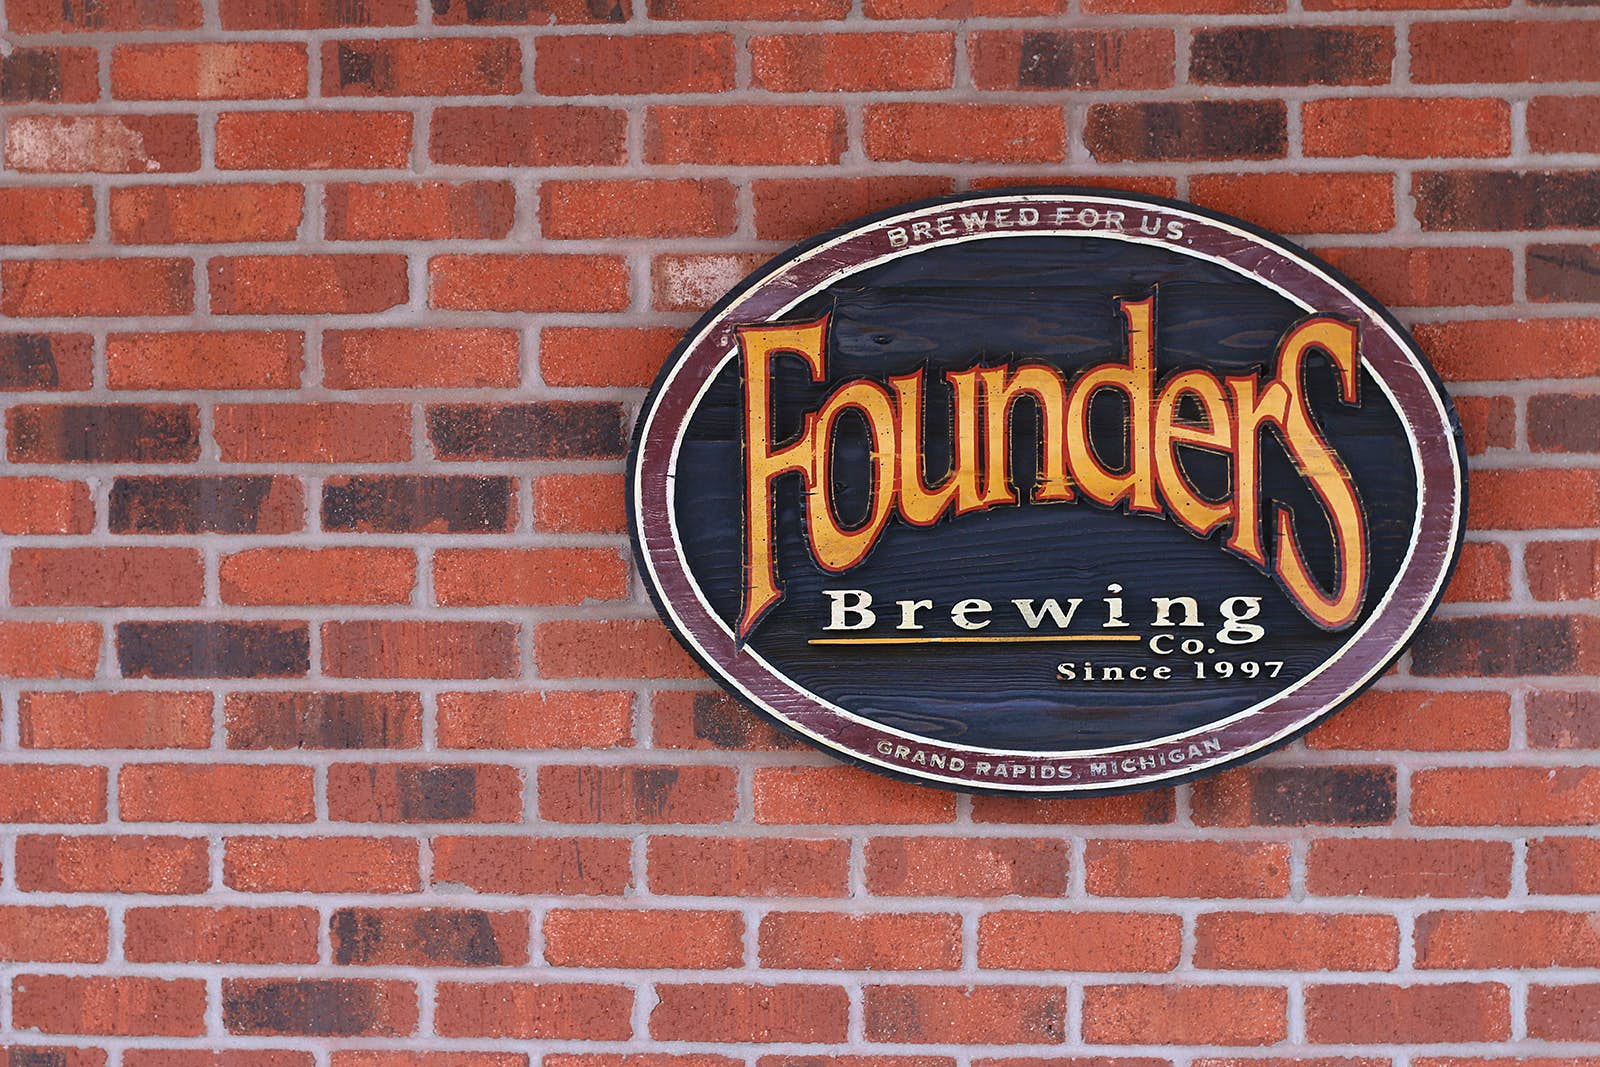 Red brick wall with oval sign containing Founders Brewing Co logo: Yellow curving words in a serif font on a green background. The number of craft breweries continues to grow in the United States.